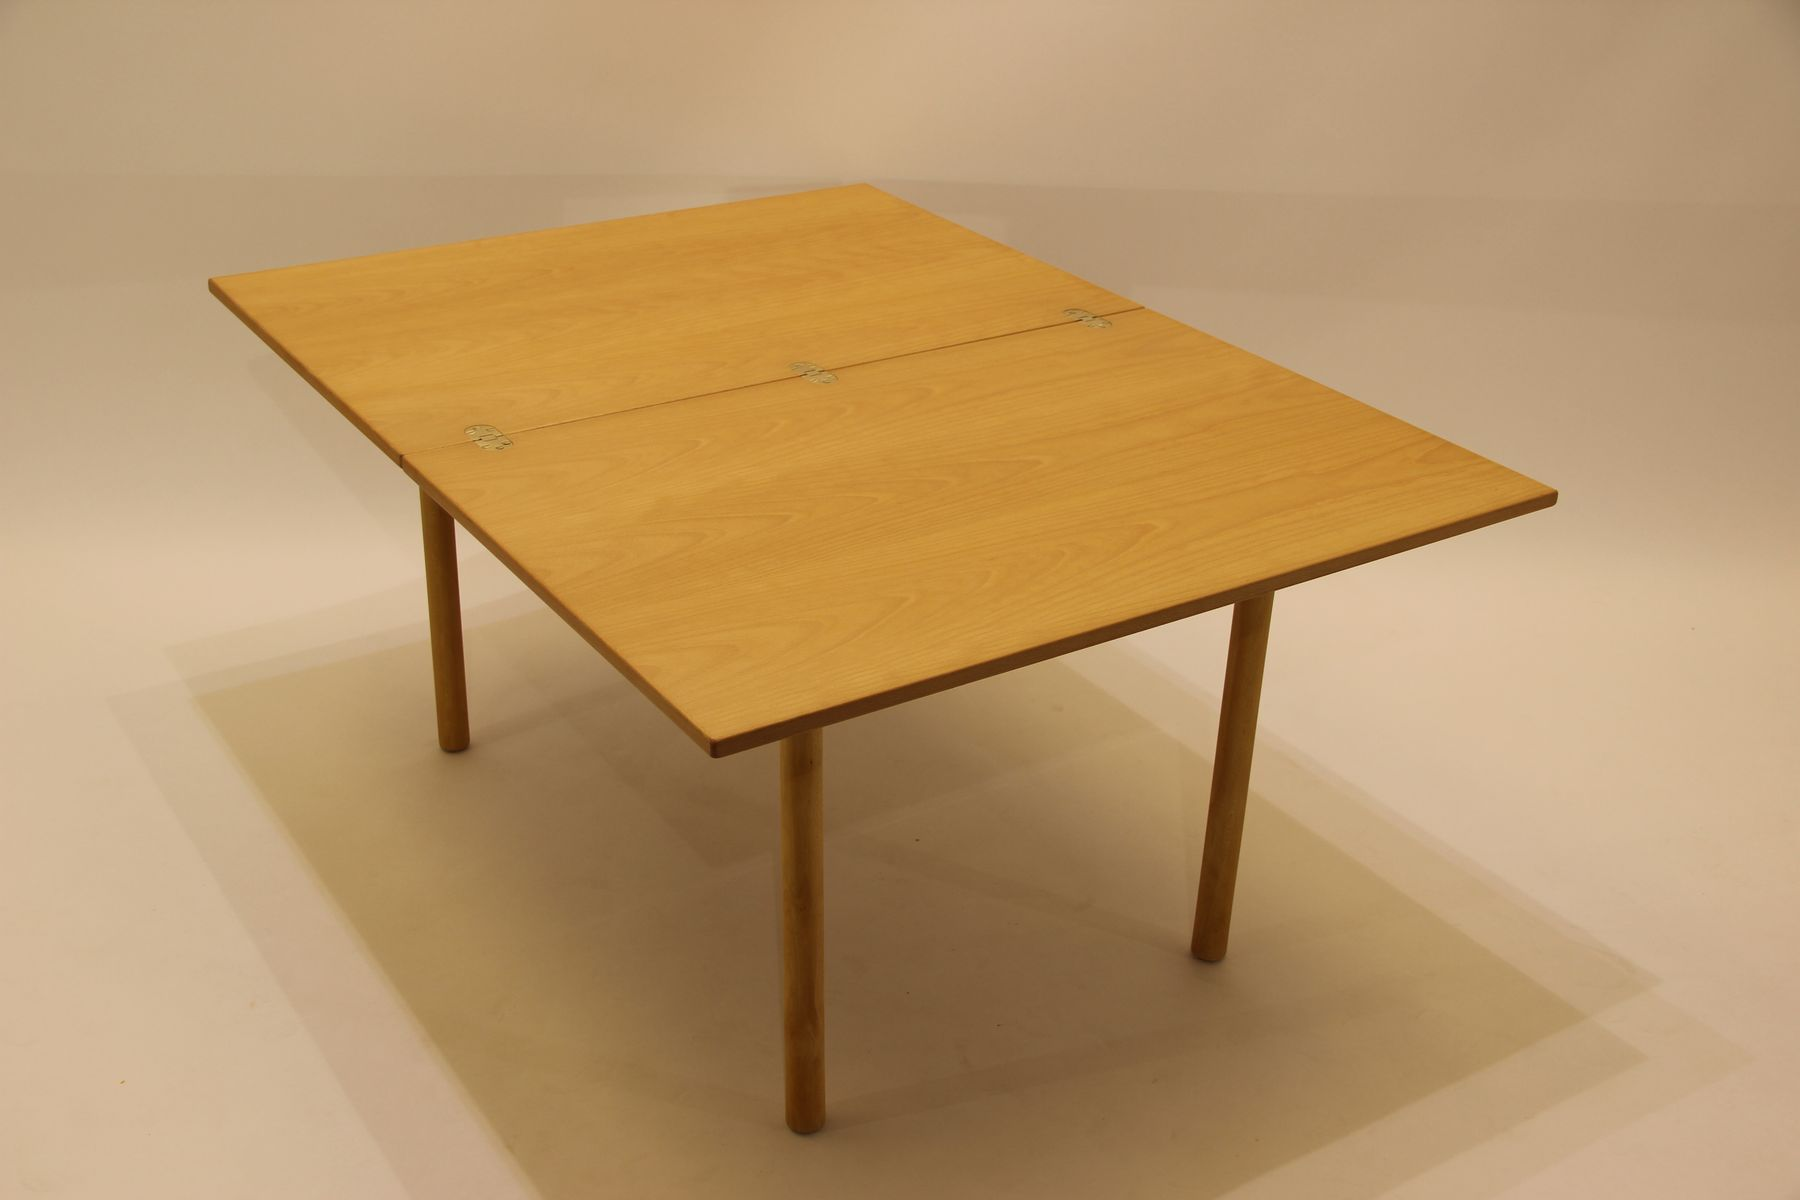 Vintage model 4500 beech coffee table by b rge mogensen for Beech coffee table